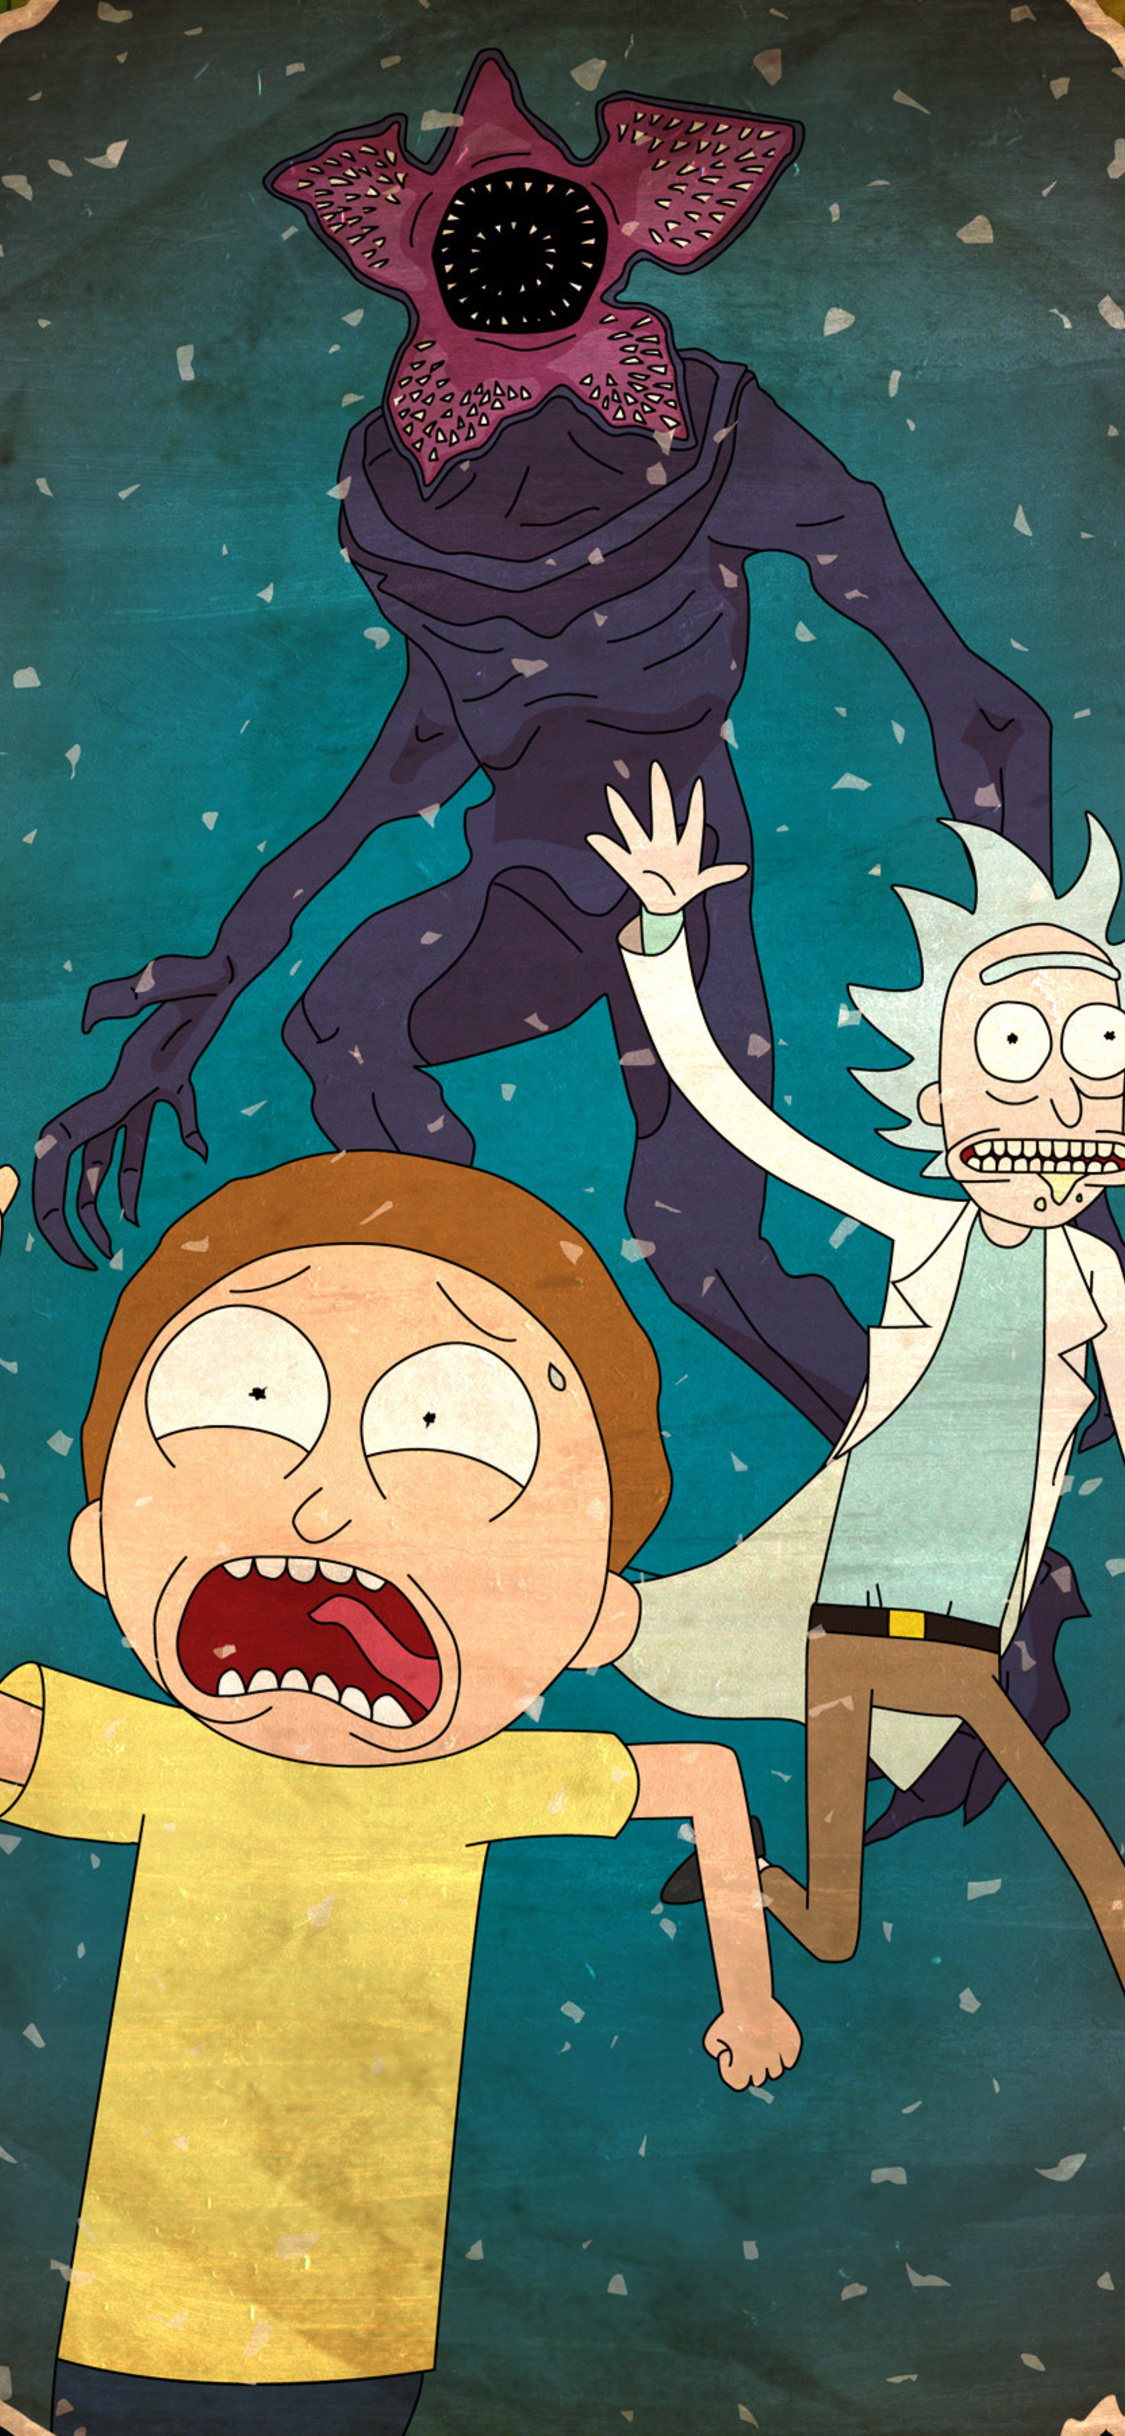 1125x2436 Rick And Morty 4k Iphone Xs Iphone 10 Iphone X Hd